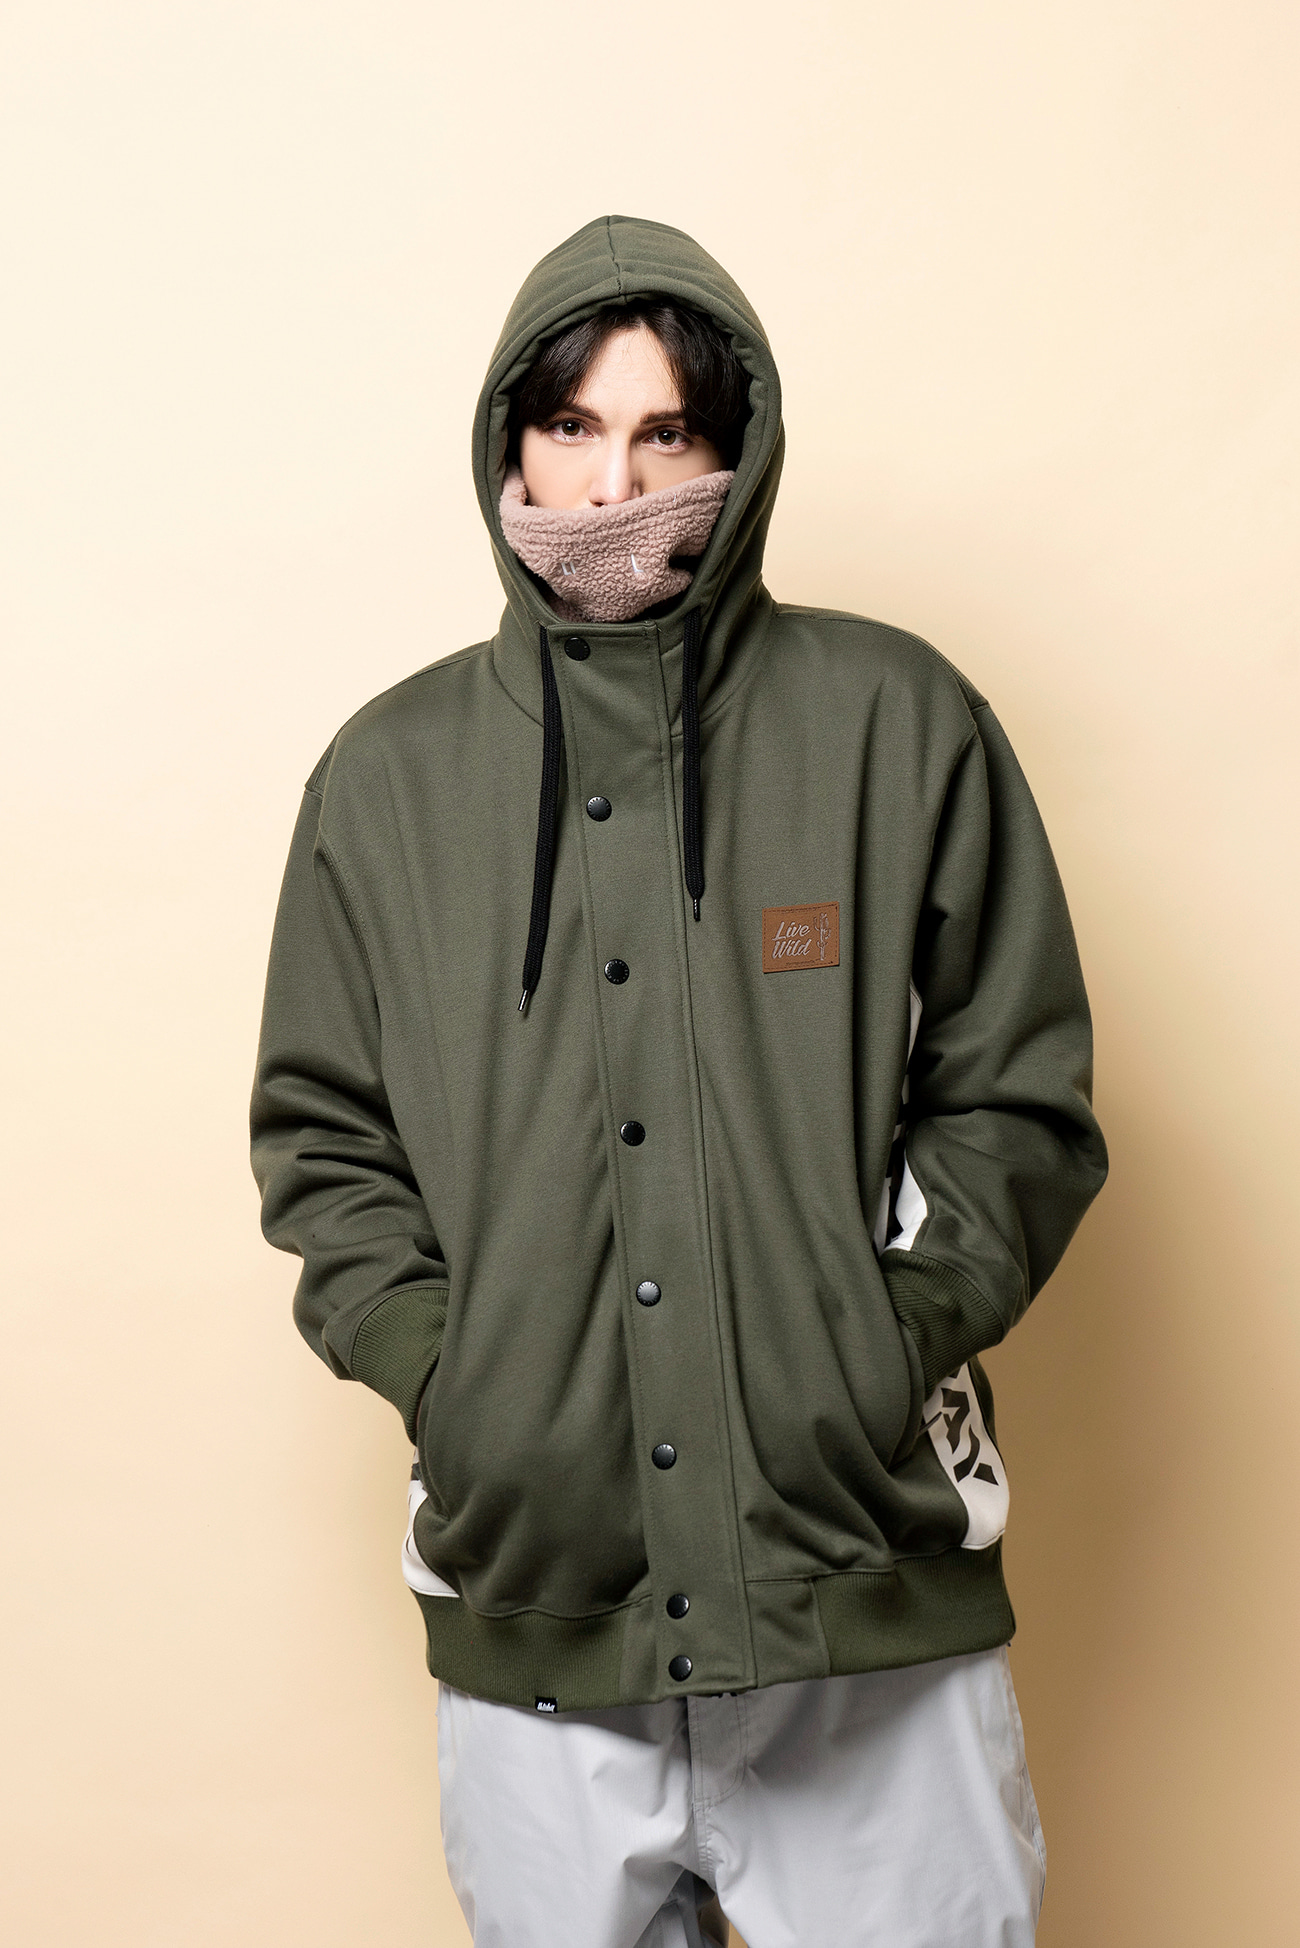 PLAYER waterproof hoodie jacket[방수집업자켓] - khakiHOLIDAY OUTERWEAR